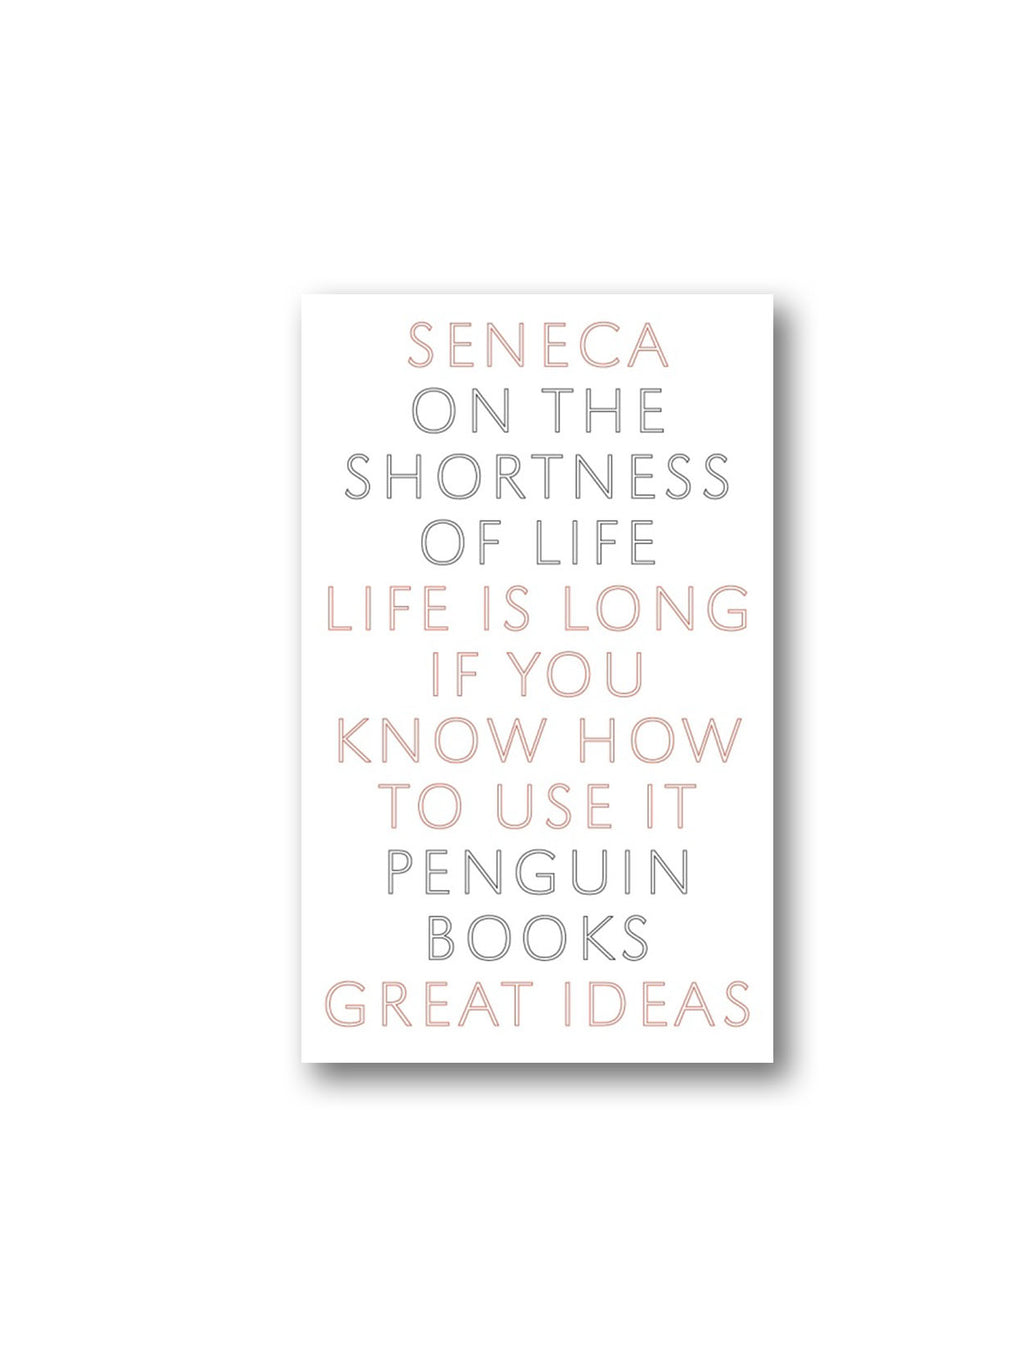 On the Shortness of Life - Penguin Great Ideas